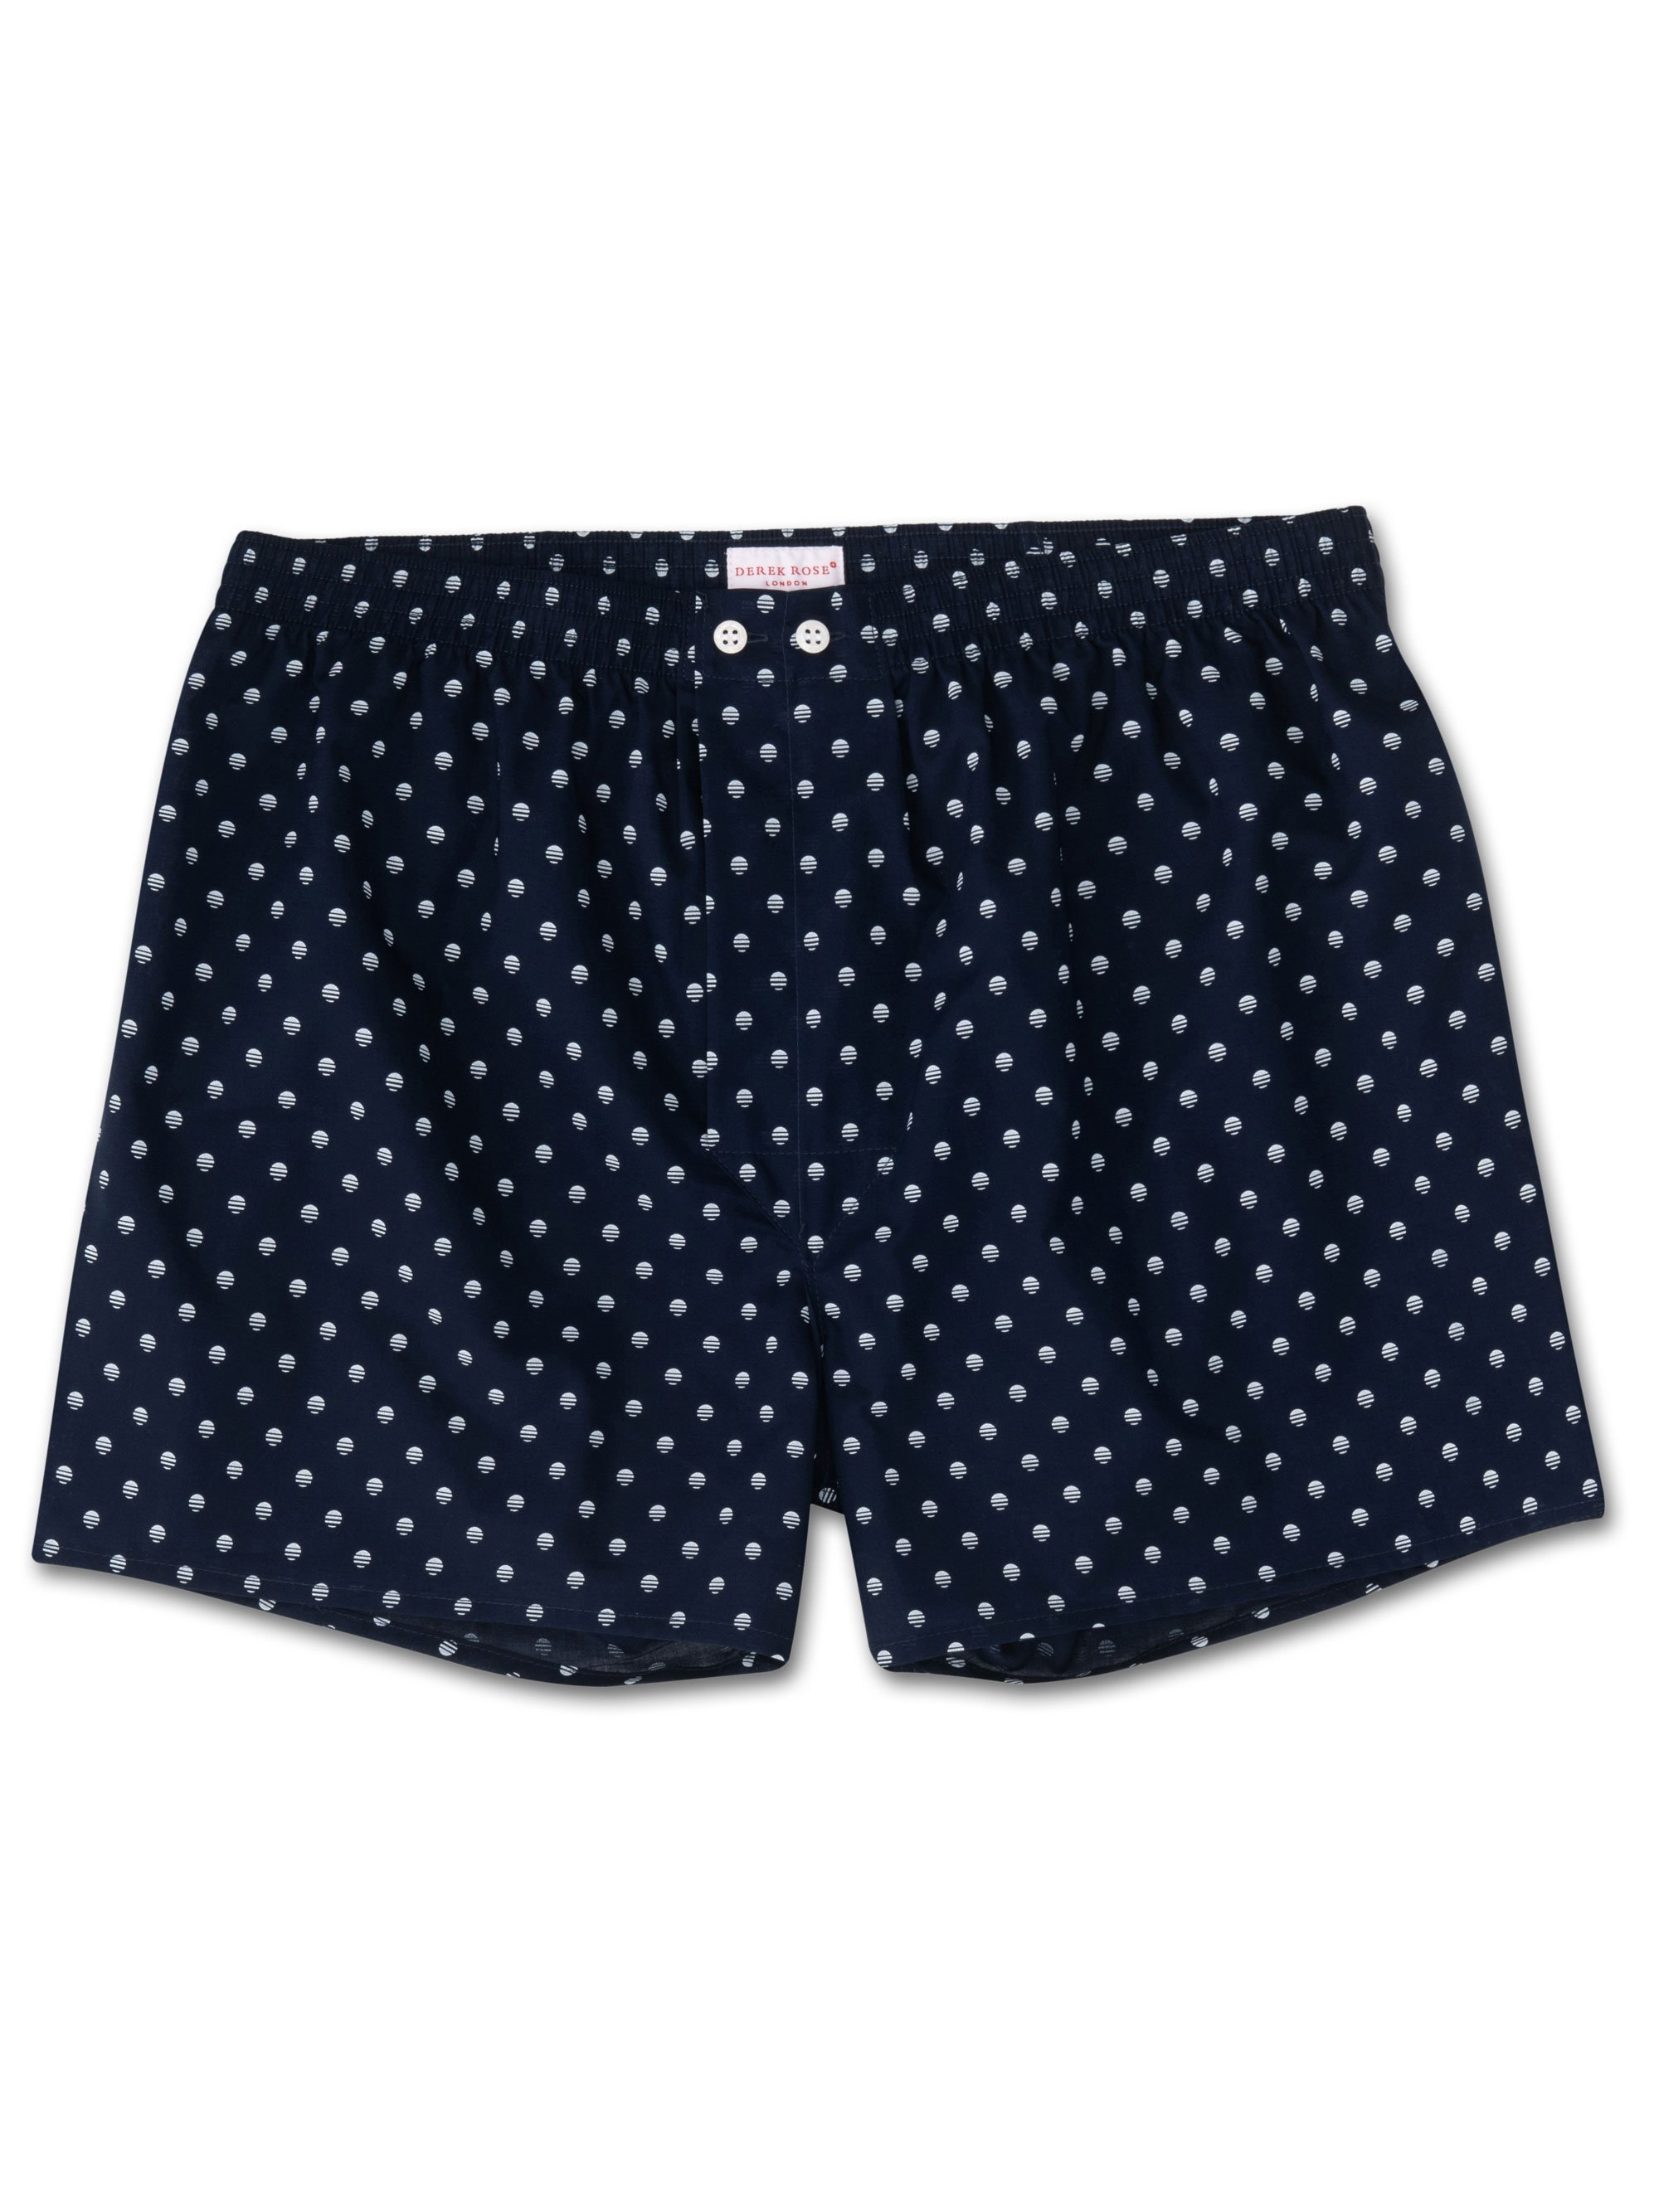 Men's Classic Fit Boxer Shorts Nelson 68 Cotton Batiste Navy